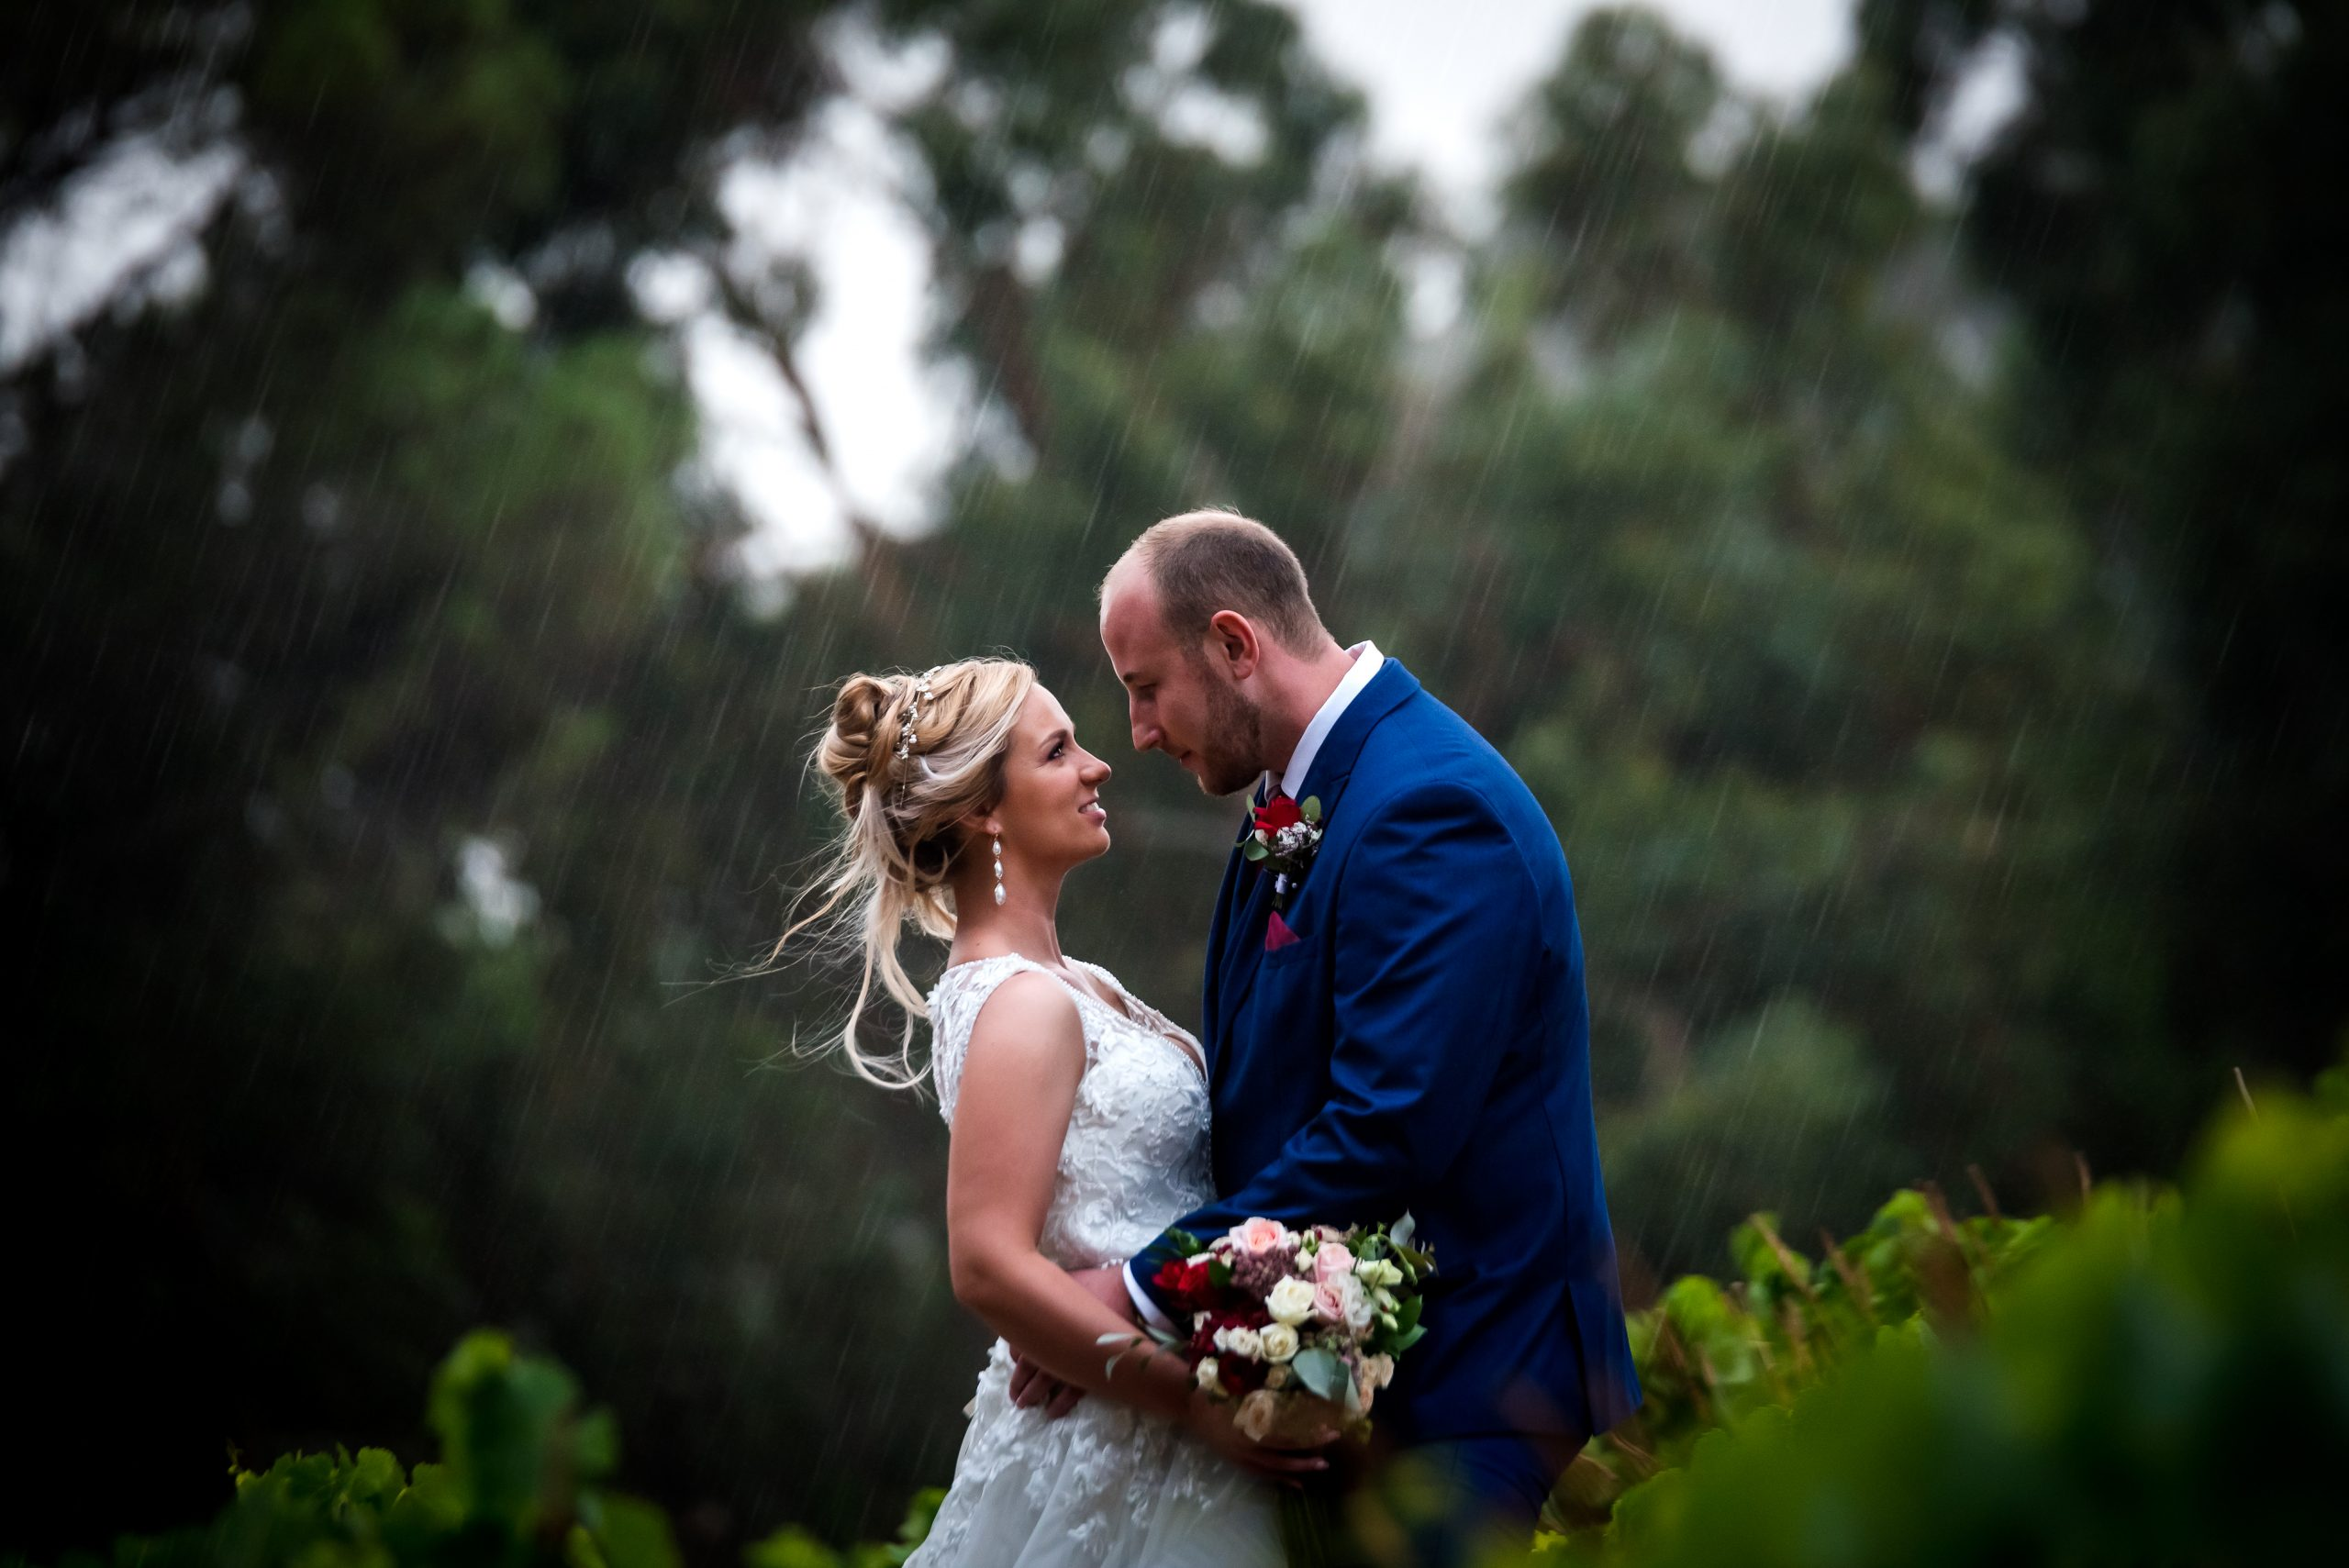 Richard & Odé | Winery Road Forest